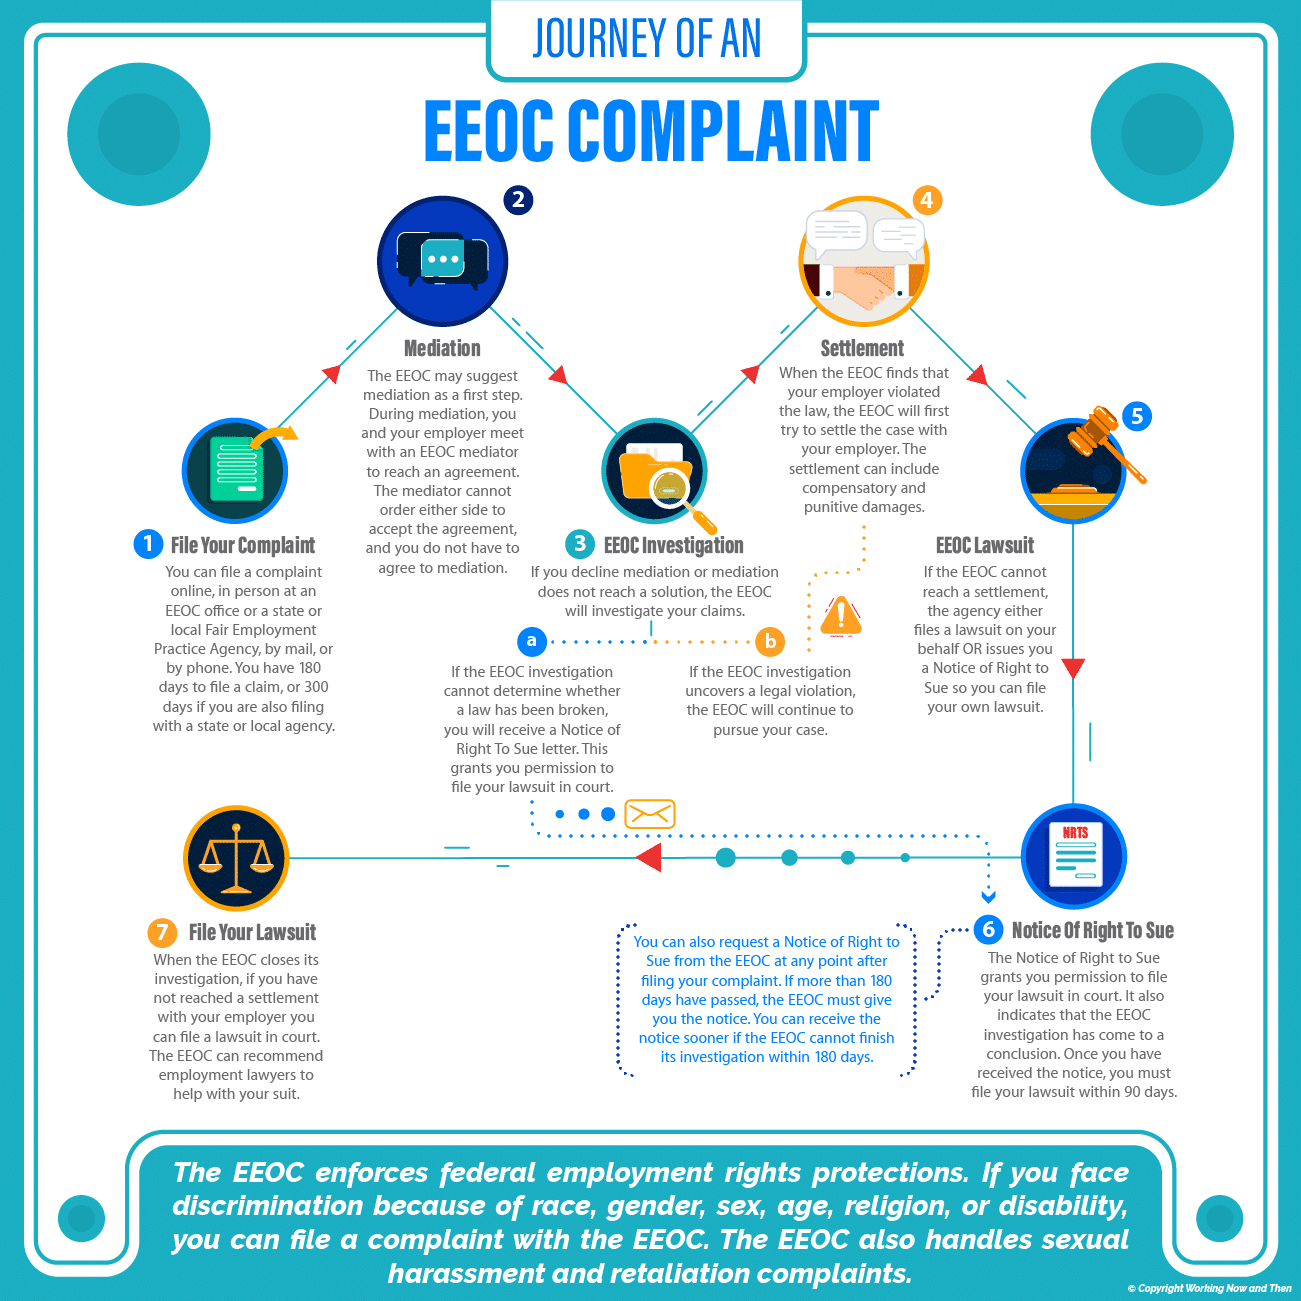 How To File An EEOC Complaint | Working Now and Then